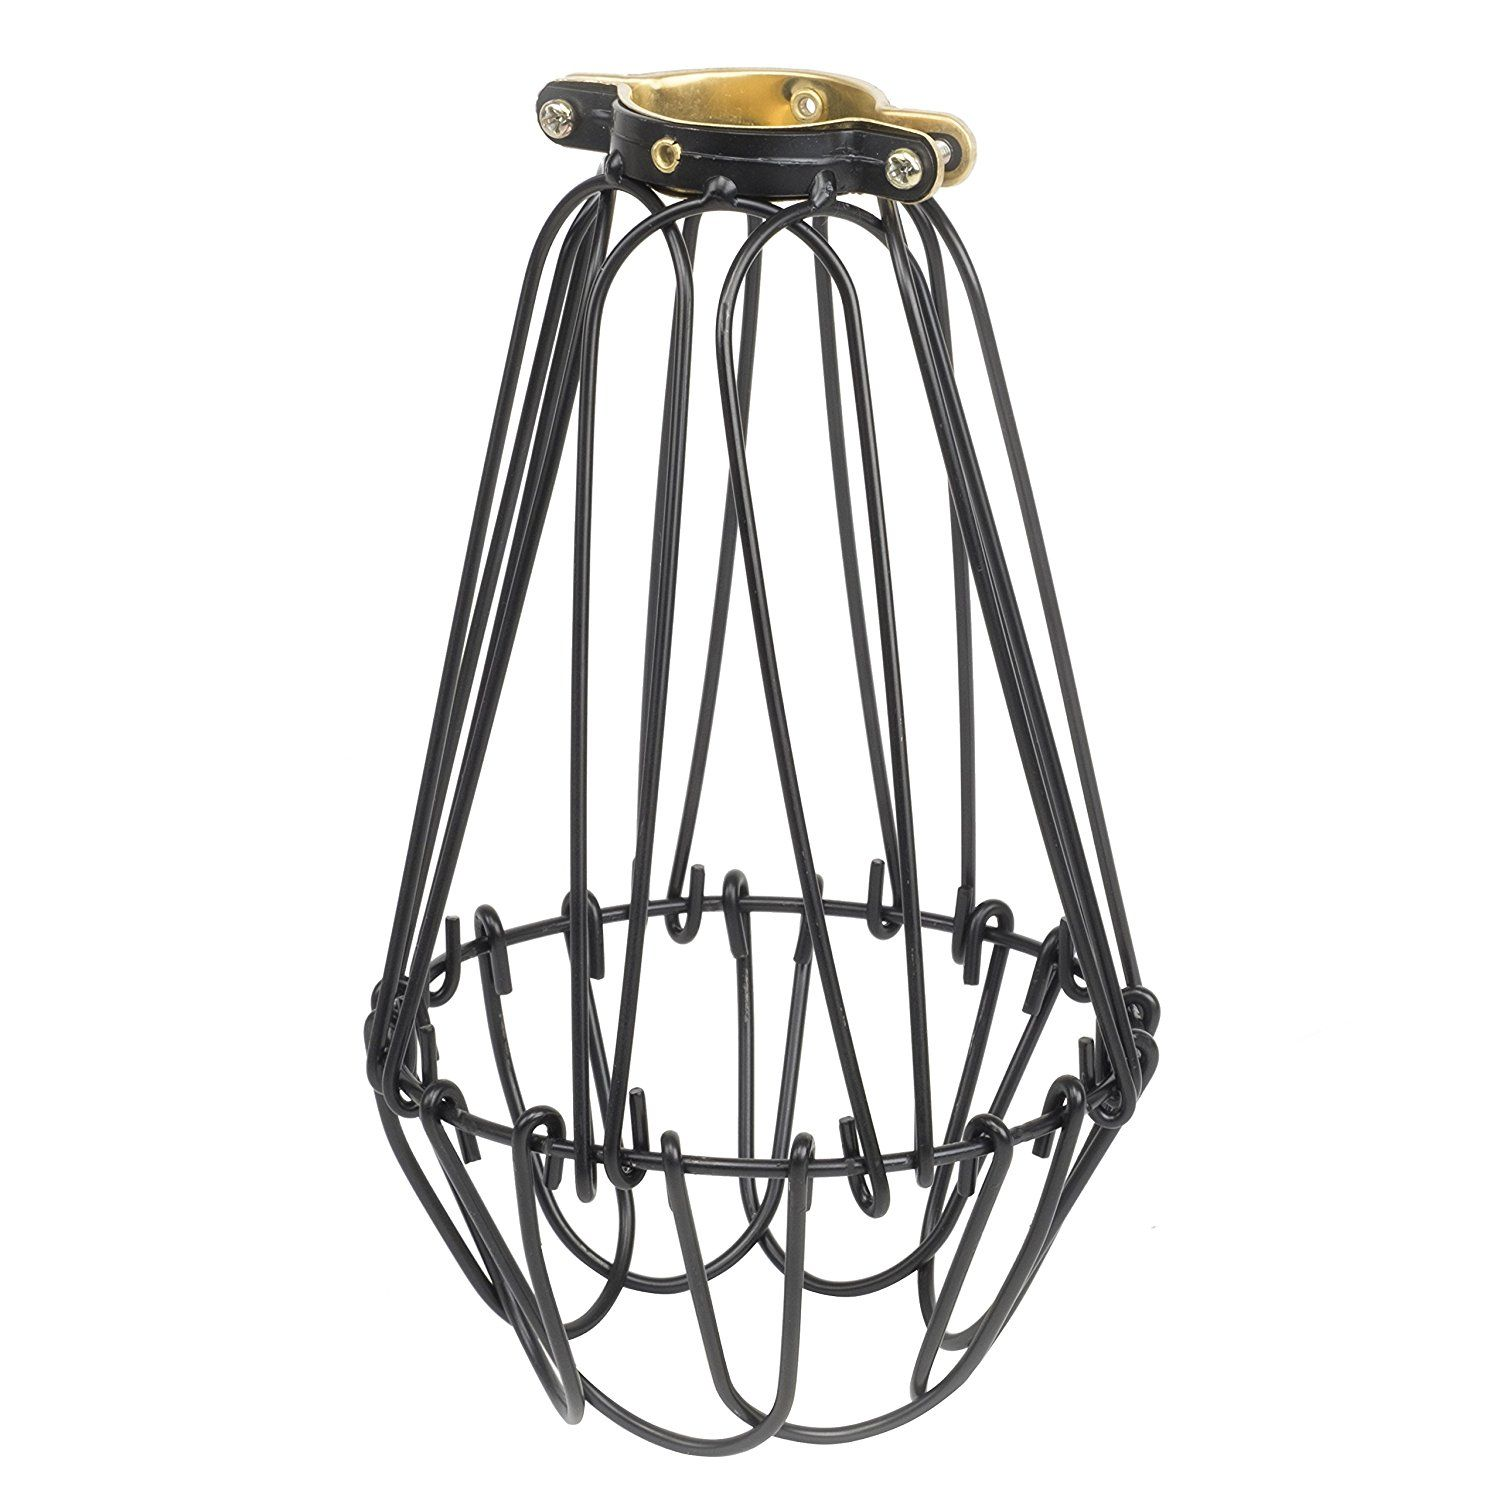 Industrial Vintage Style Hanging Pendant Light Fixture